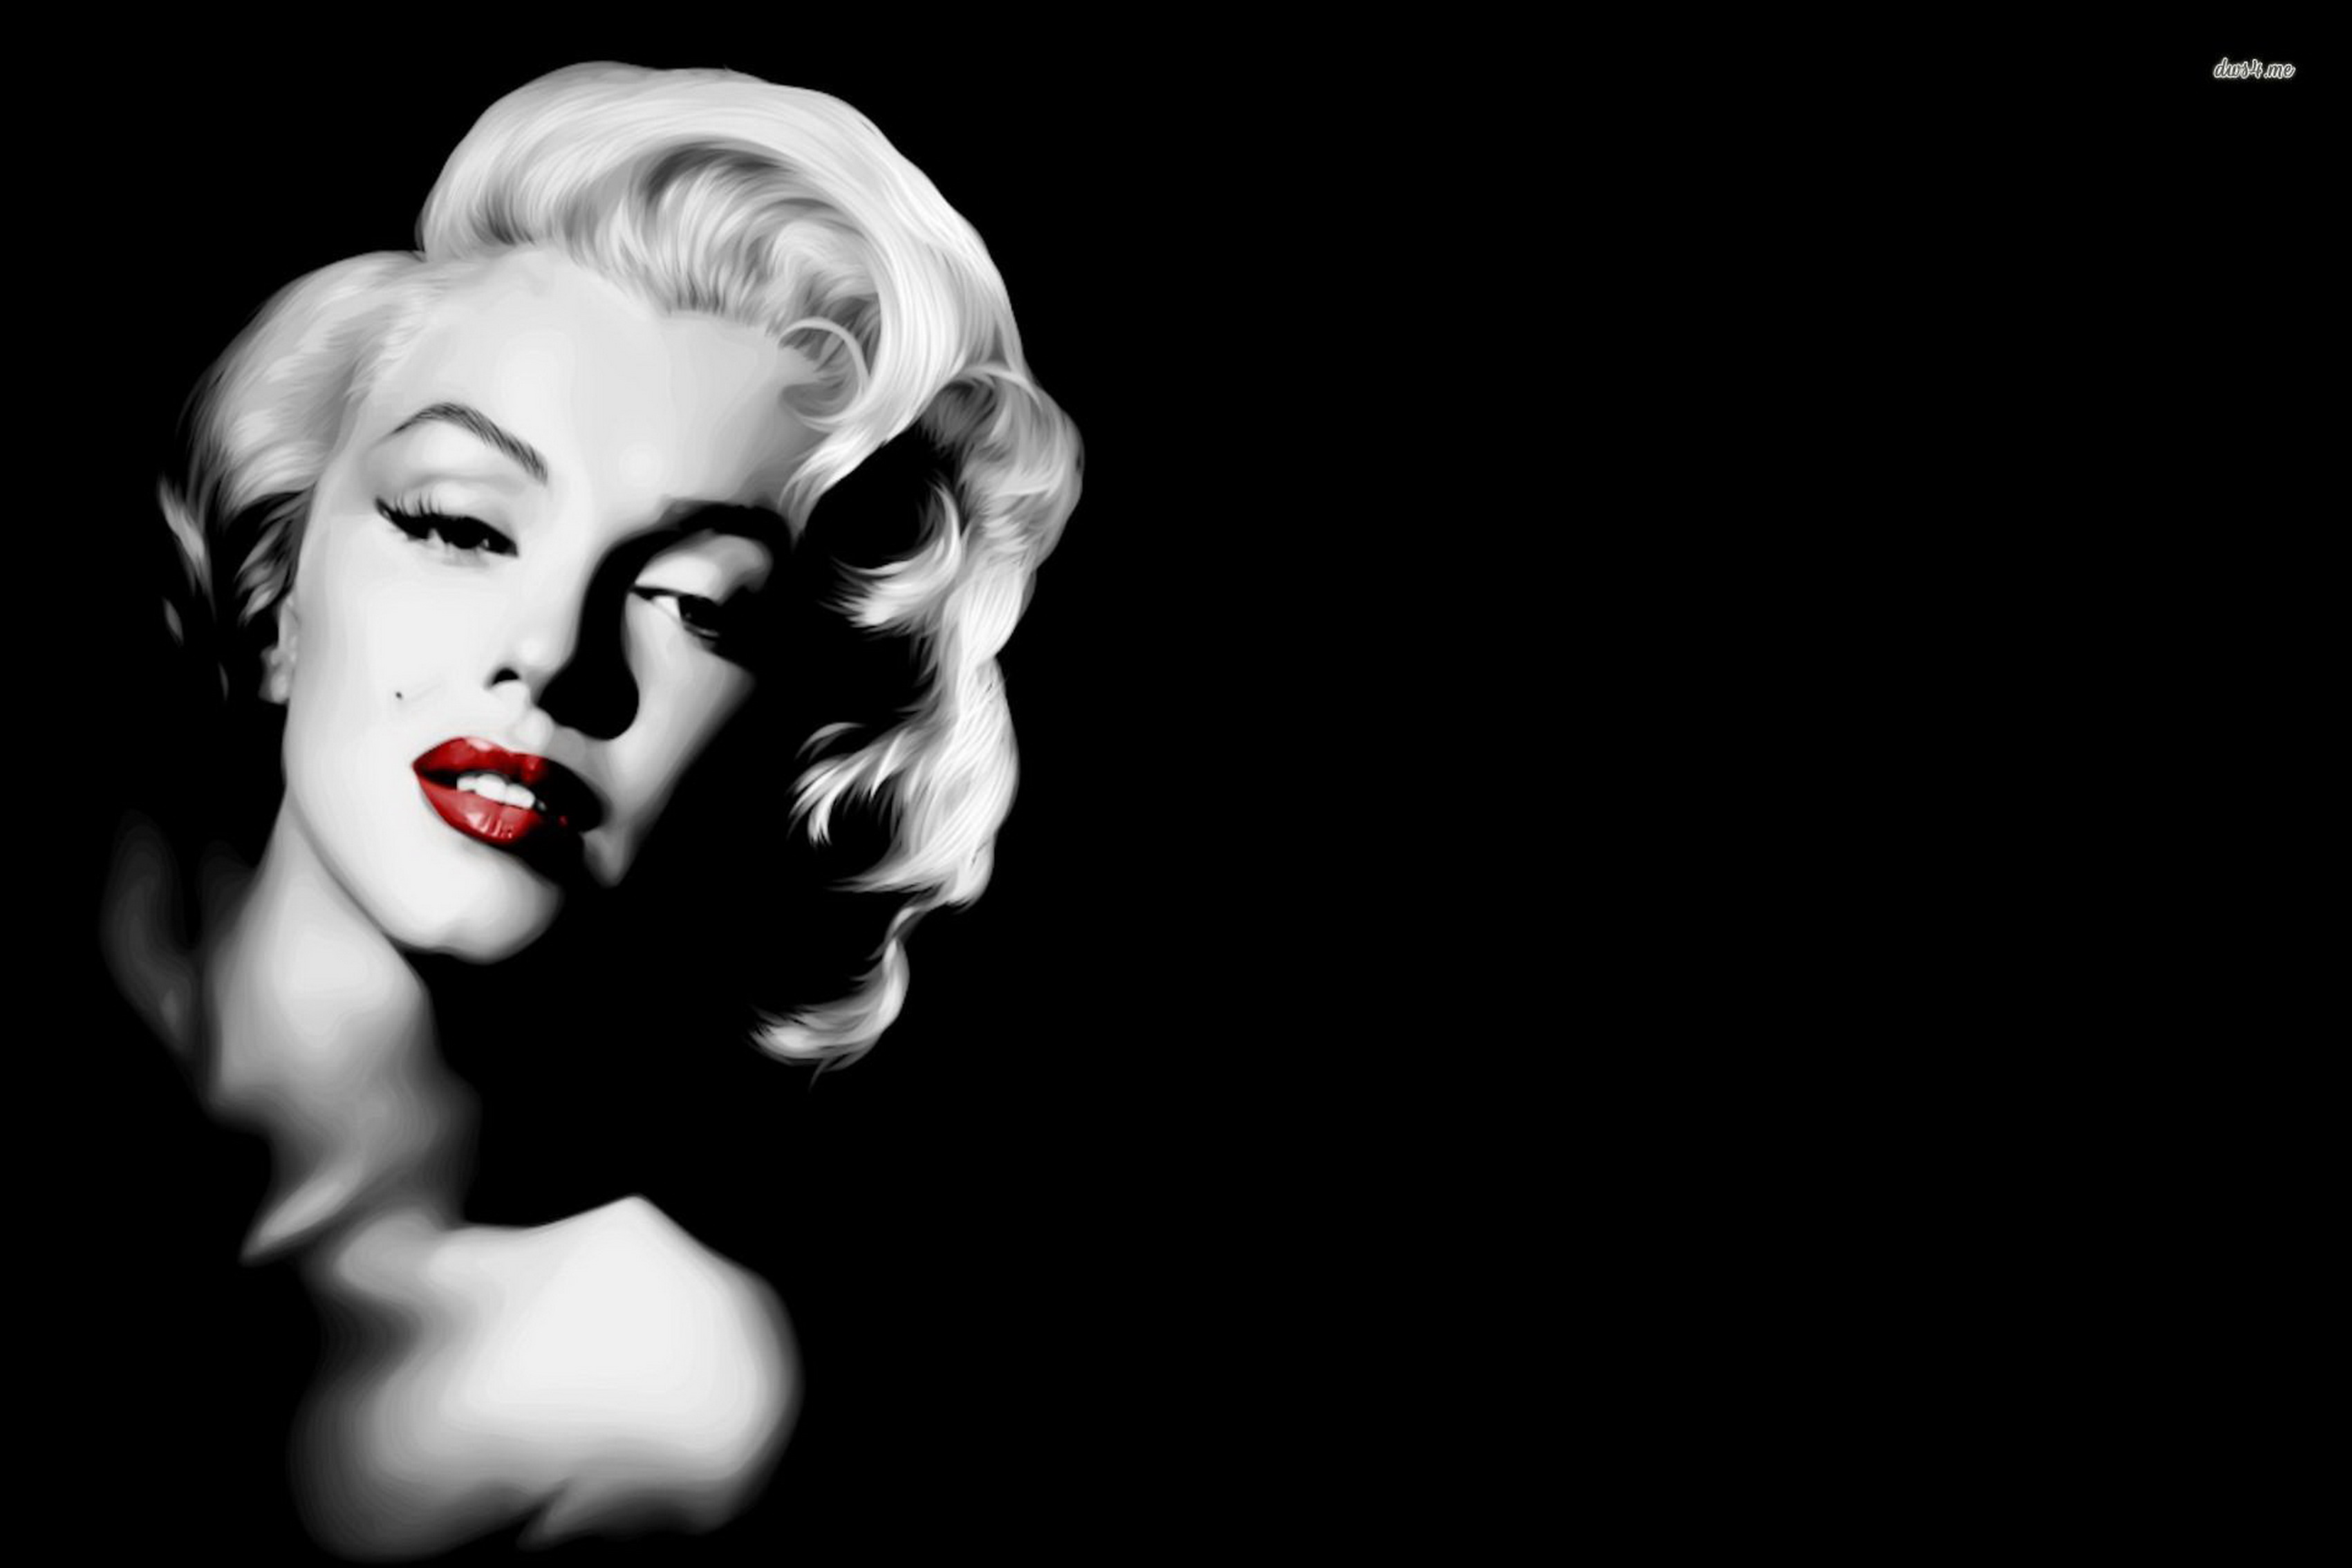 Home decoration marilyn monroe celebrity celebrities black white picture silk fabric poster print rw095